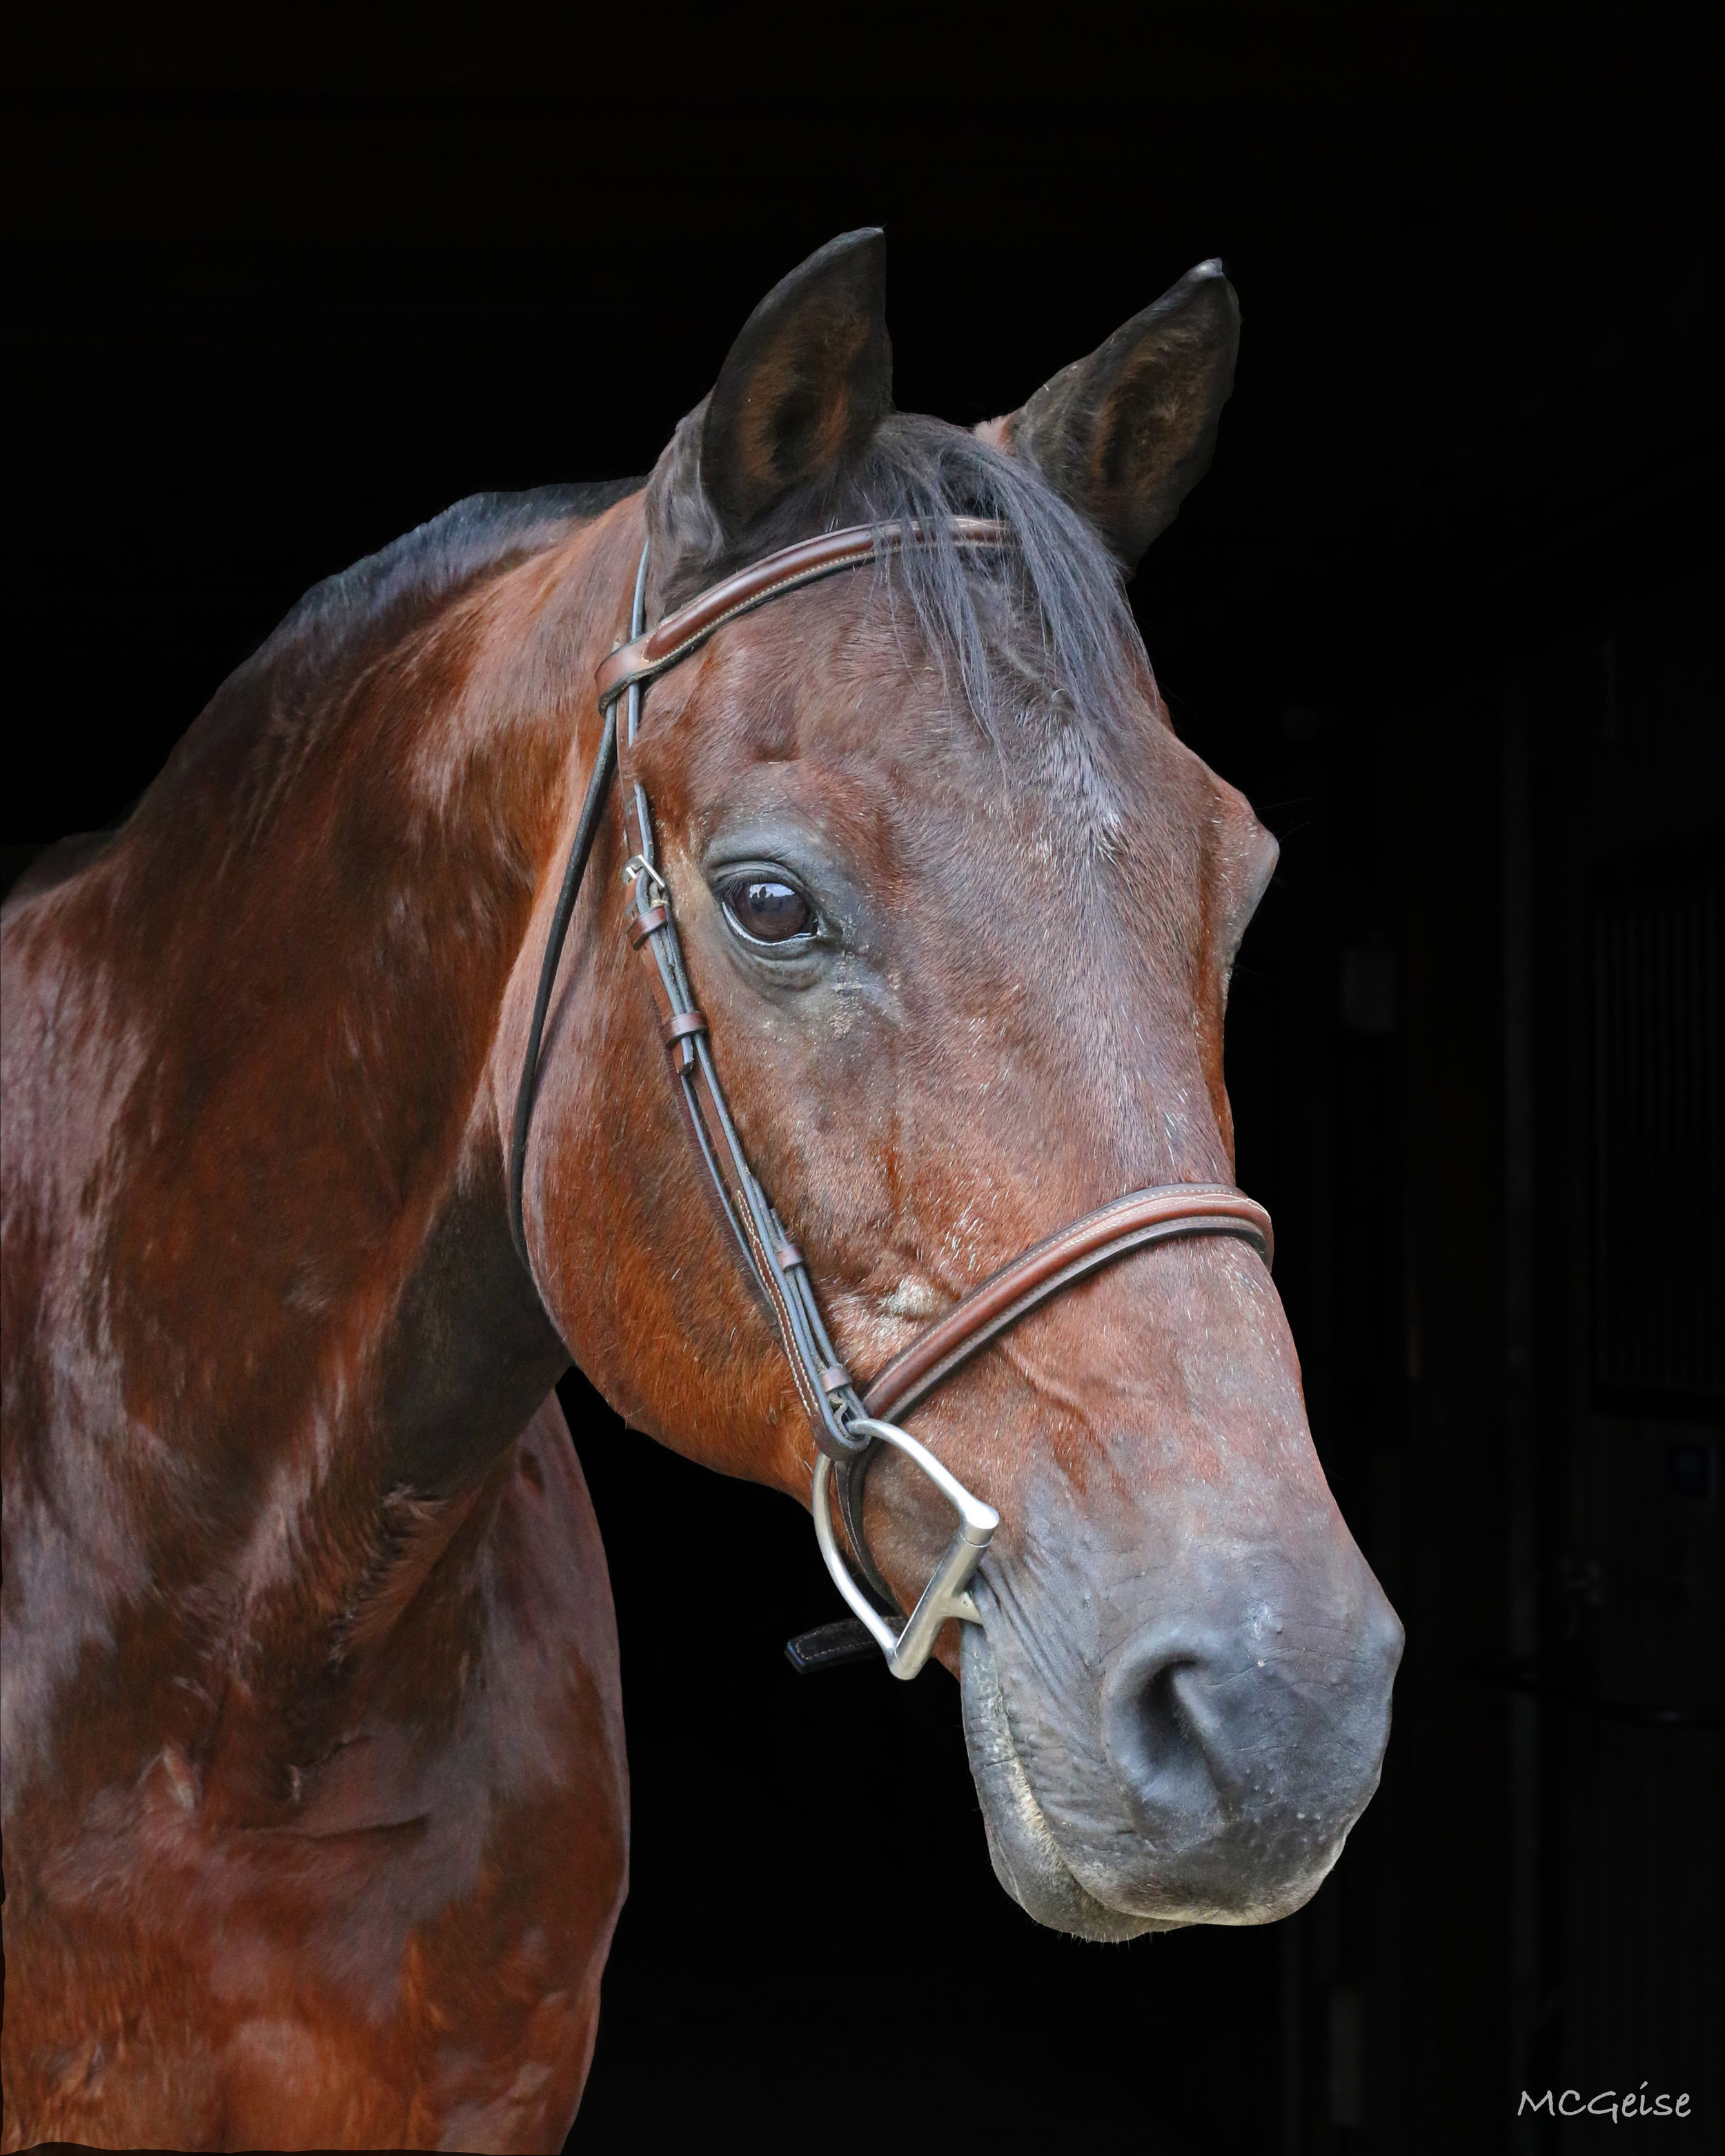 CARSON  Carize (Carson) is a 15.2 hand, warmblood gelding. Carson was donated to Mane Stream from Robert Beck of Hunters Crossing Farm. Carson's go-to snack is Peeps! Prior to joining Mane Stream Carson could be found showing in the Children and Adult hunters.